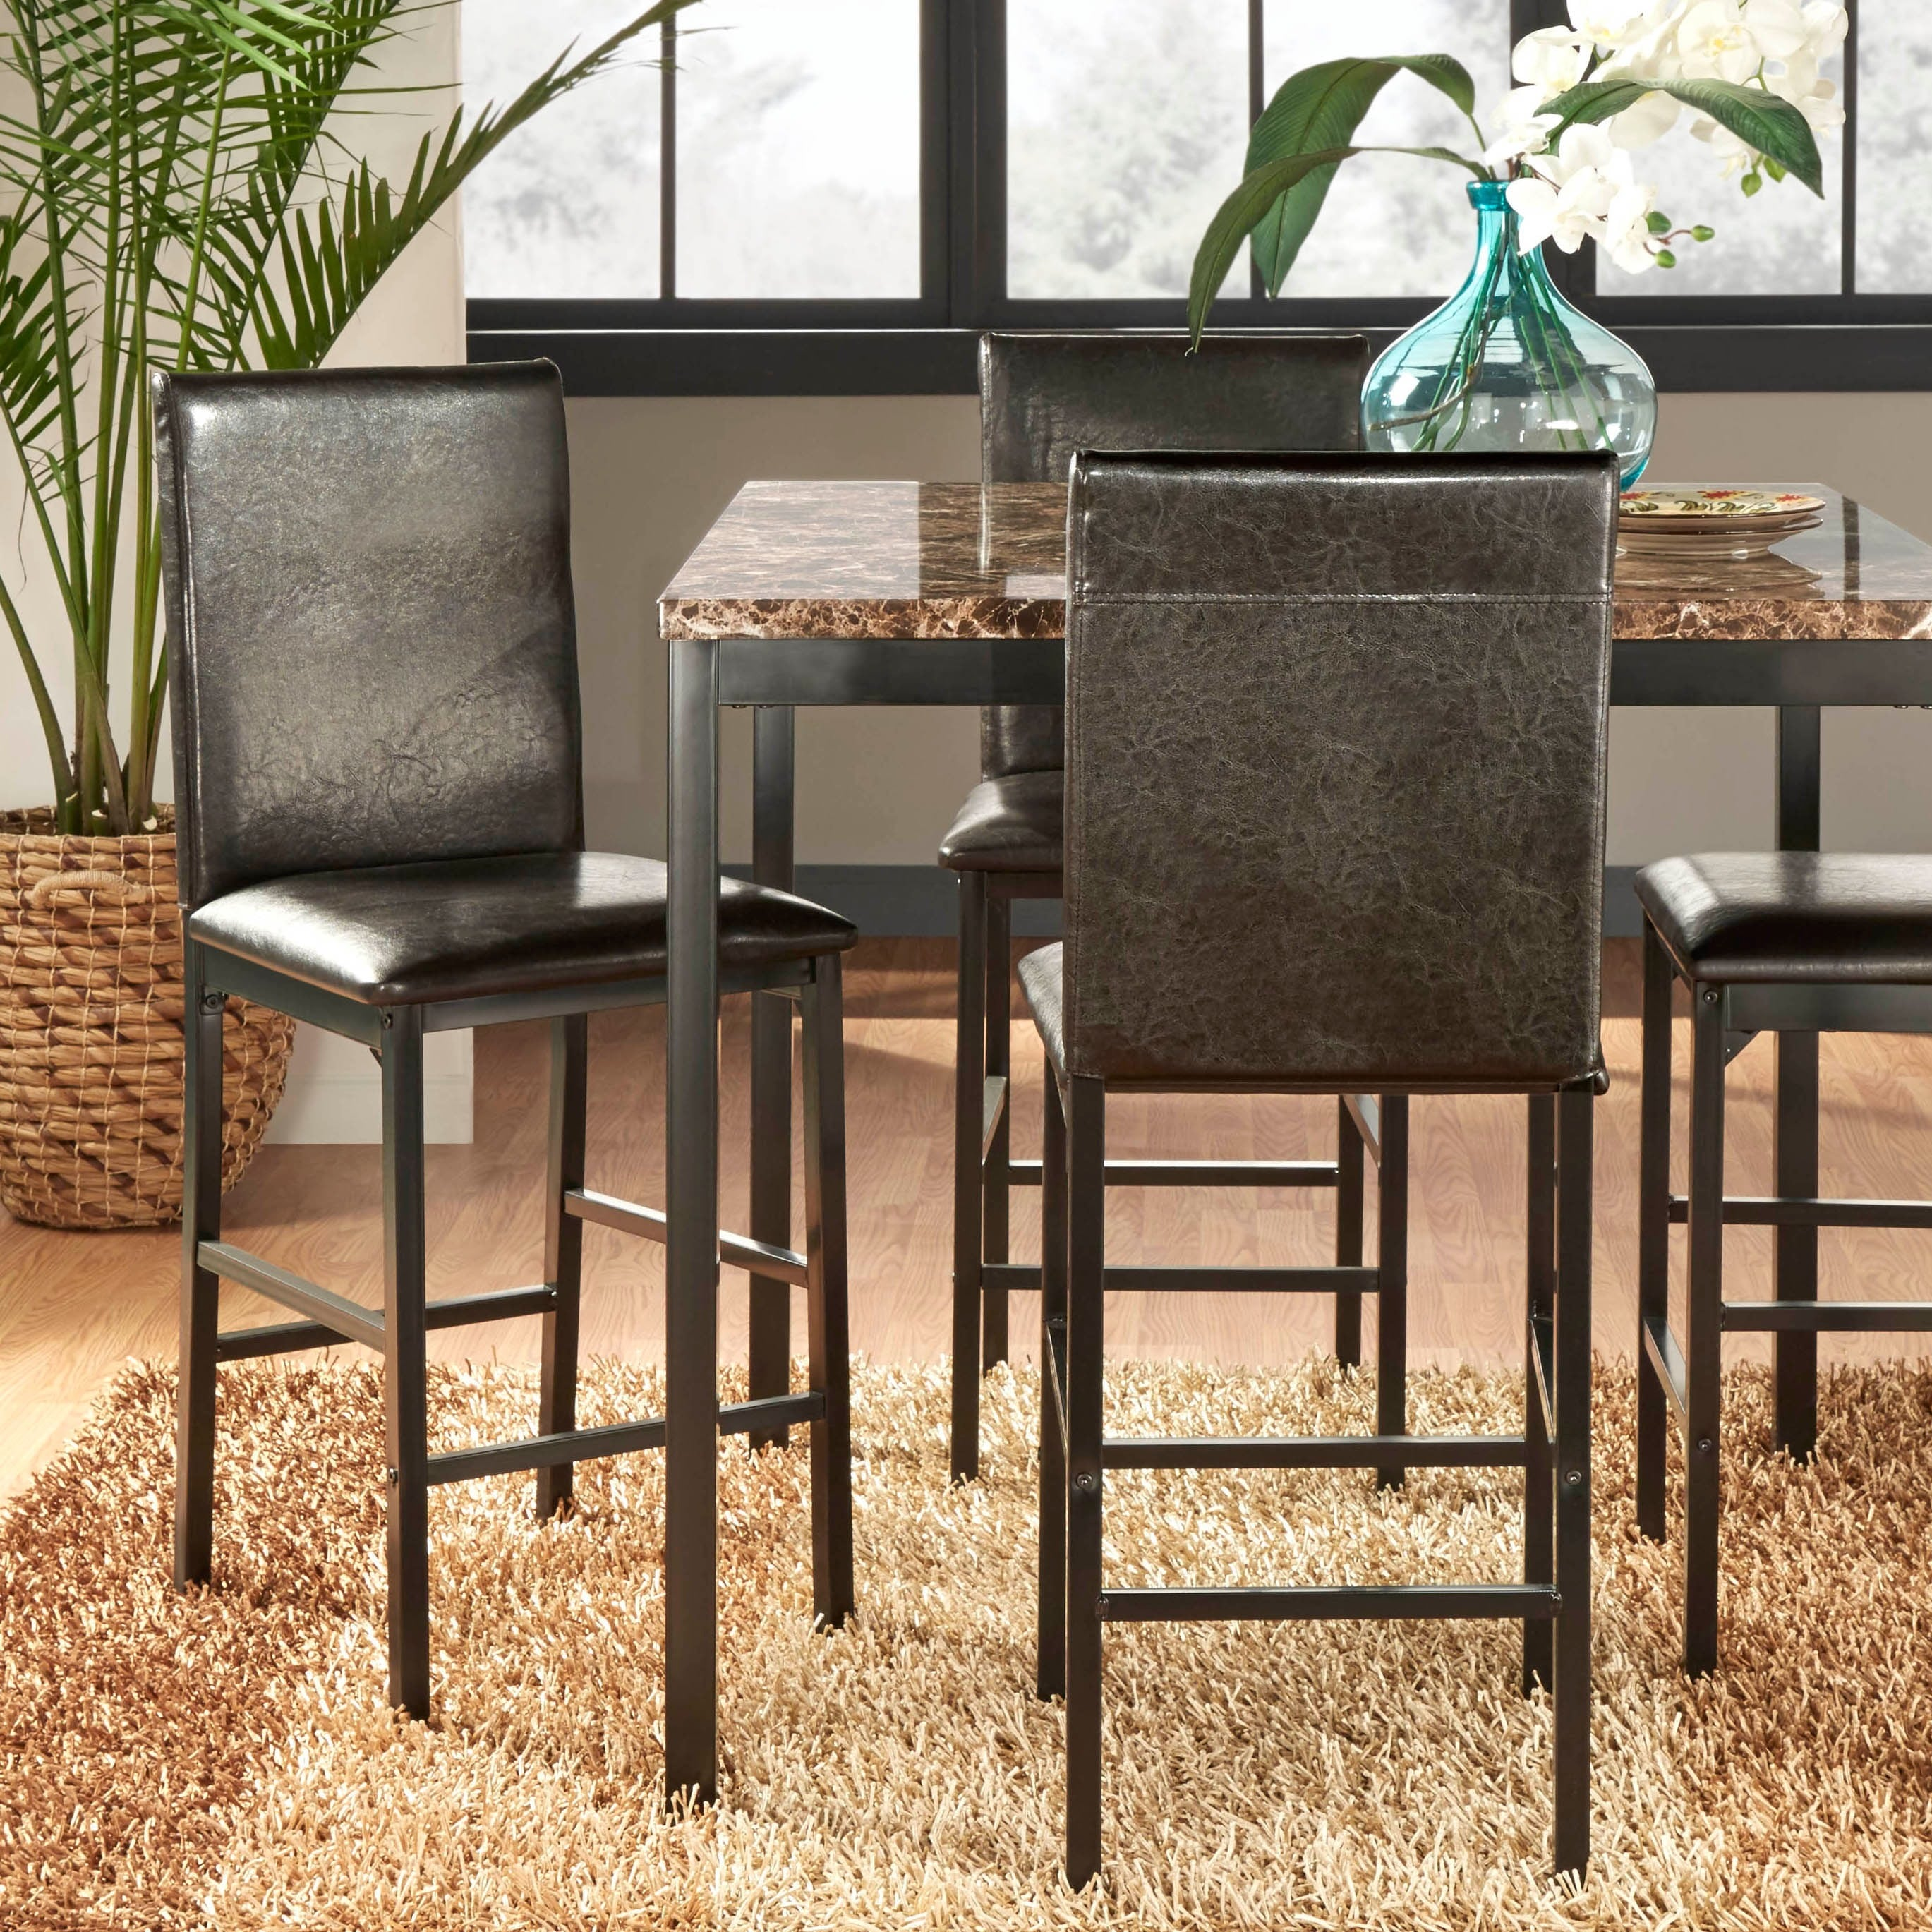 Peachy Darcy Metal Upholstered Counter Height Dining Chairs Set Of 4 By Inspire Q Bold Pdpeps Interior Chair Design Pdpepsorg